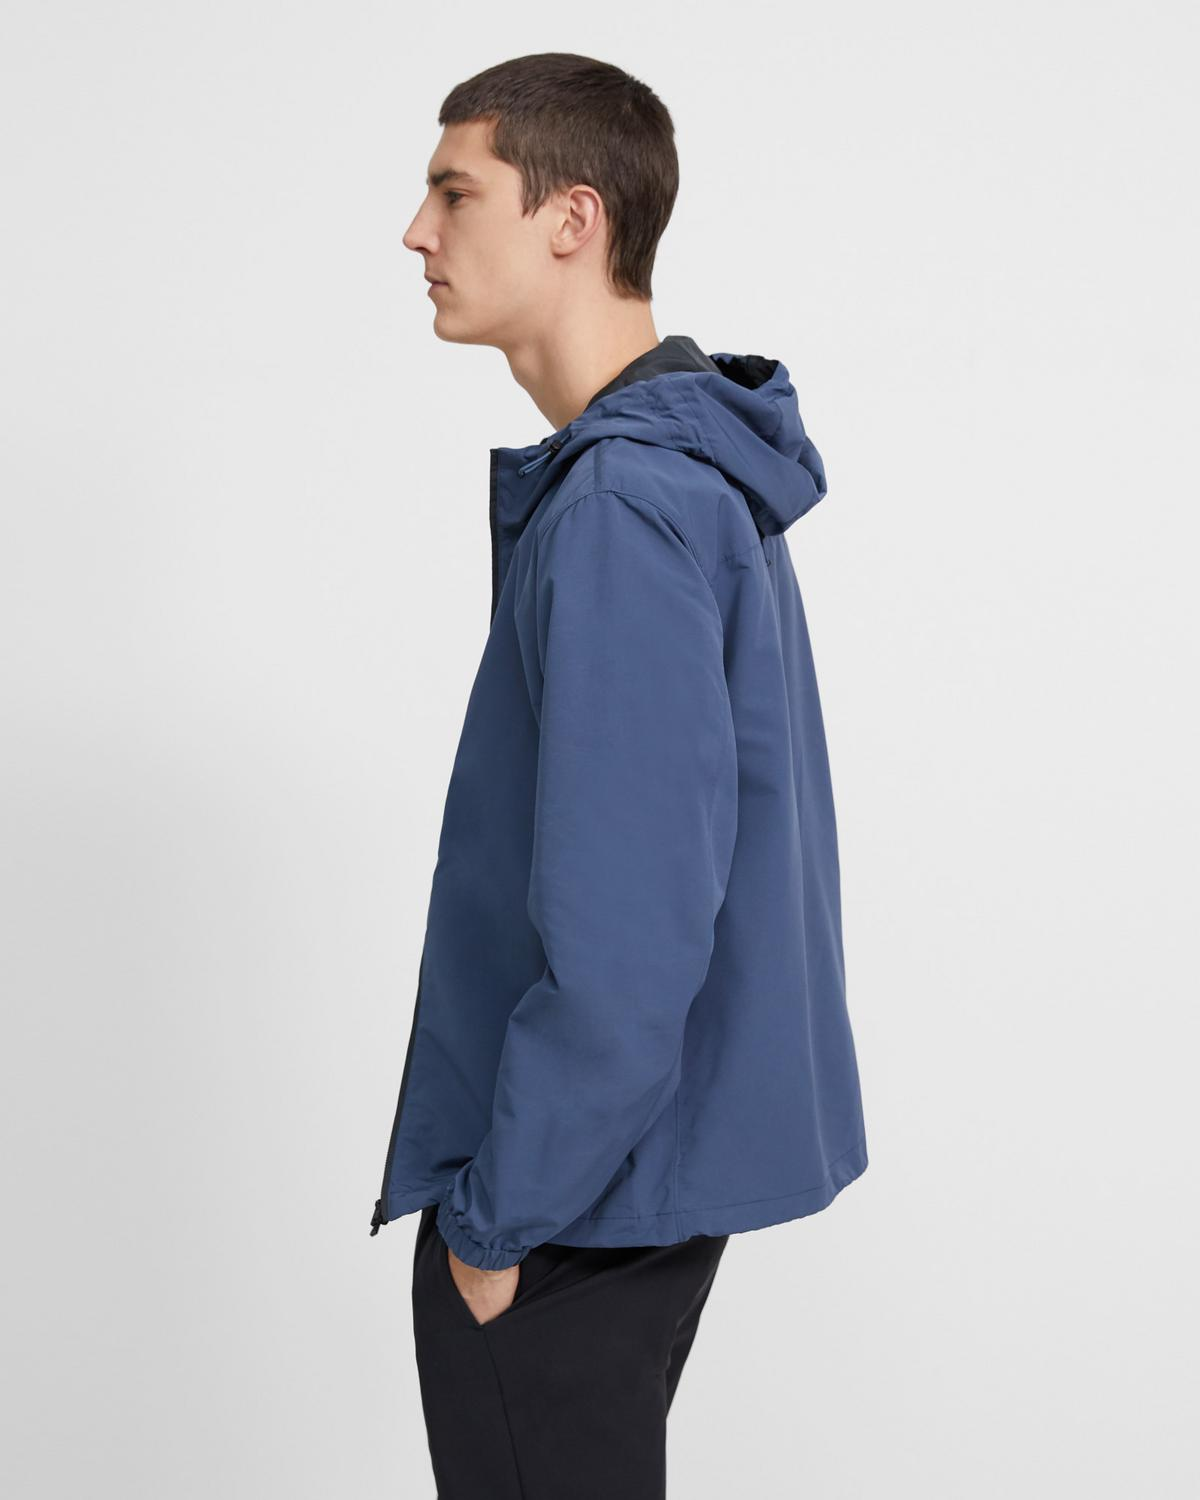 Packable Jacket in Tech Weave